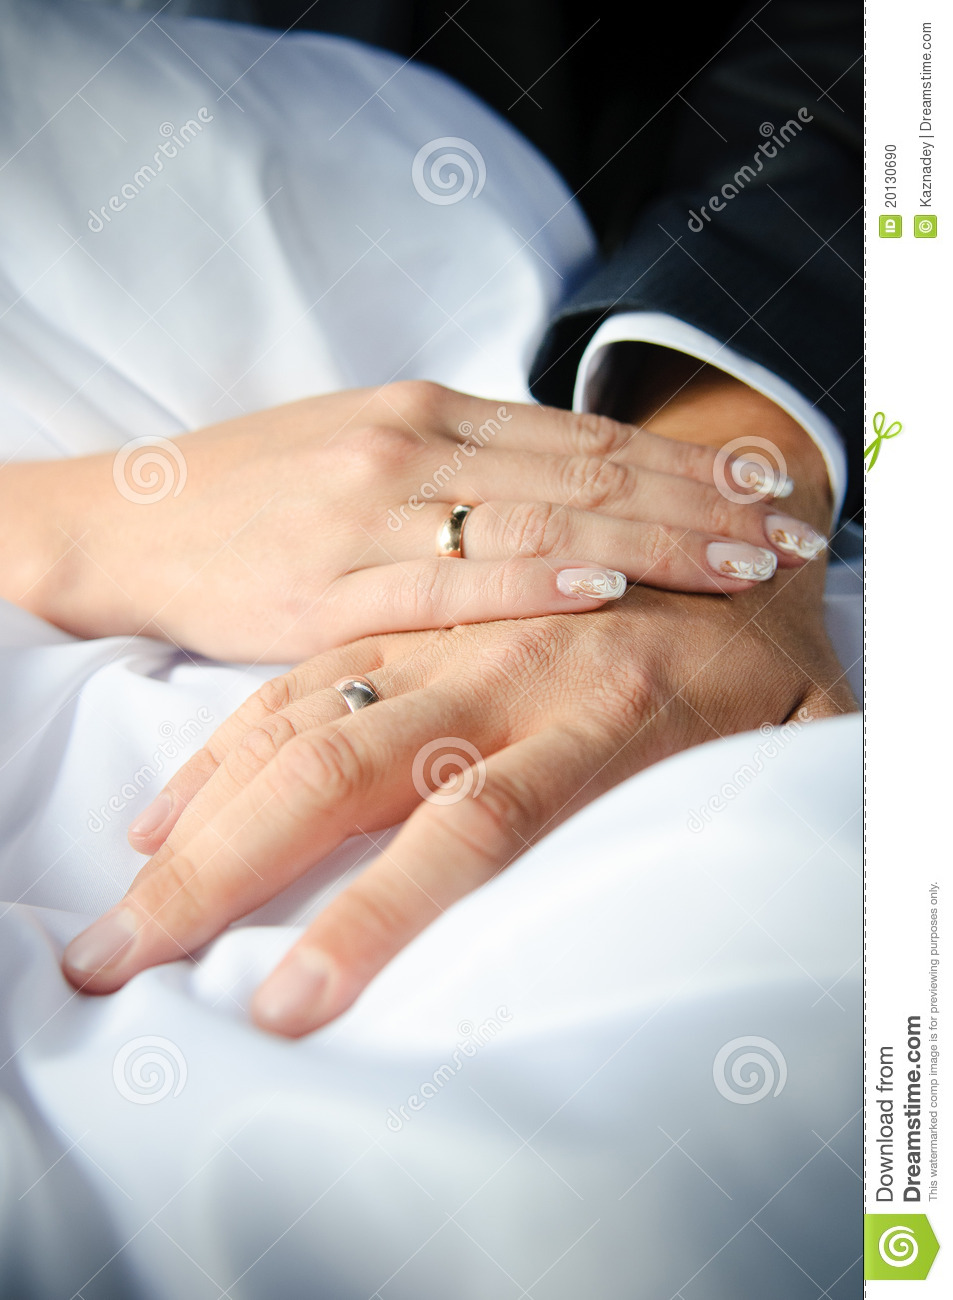 Outstanding Pictures of Couples Wedding Rings On Hands 953 x 1300 · 229 kB · jpeg